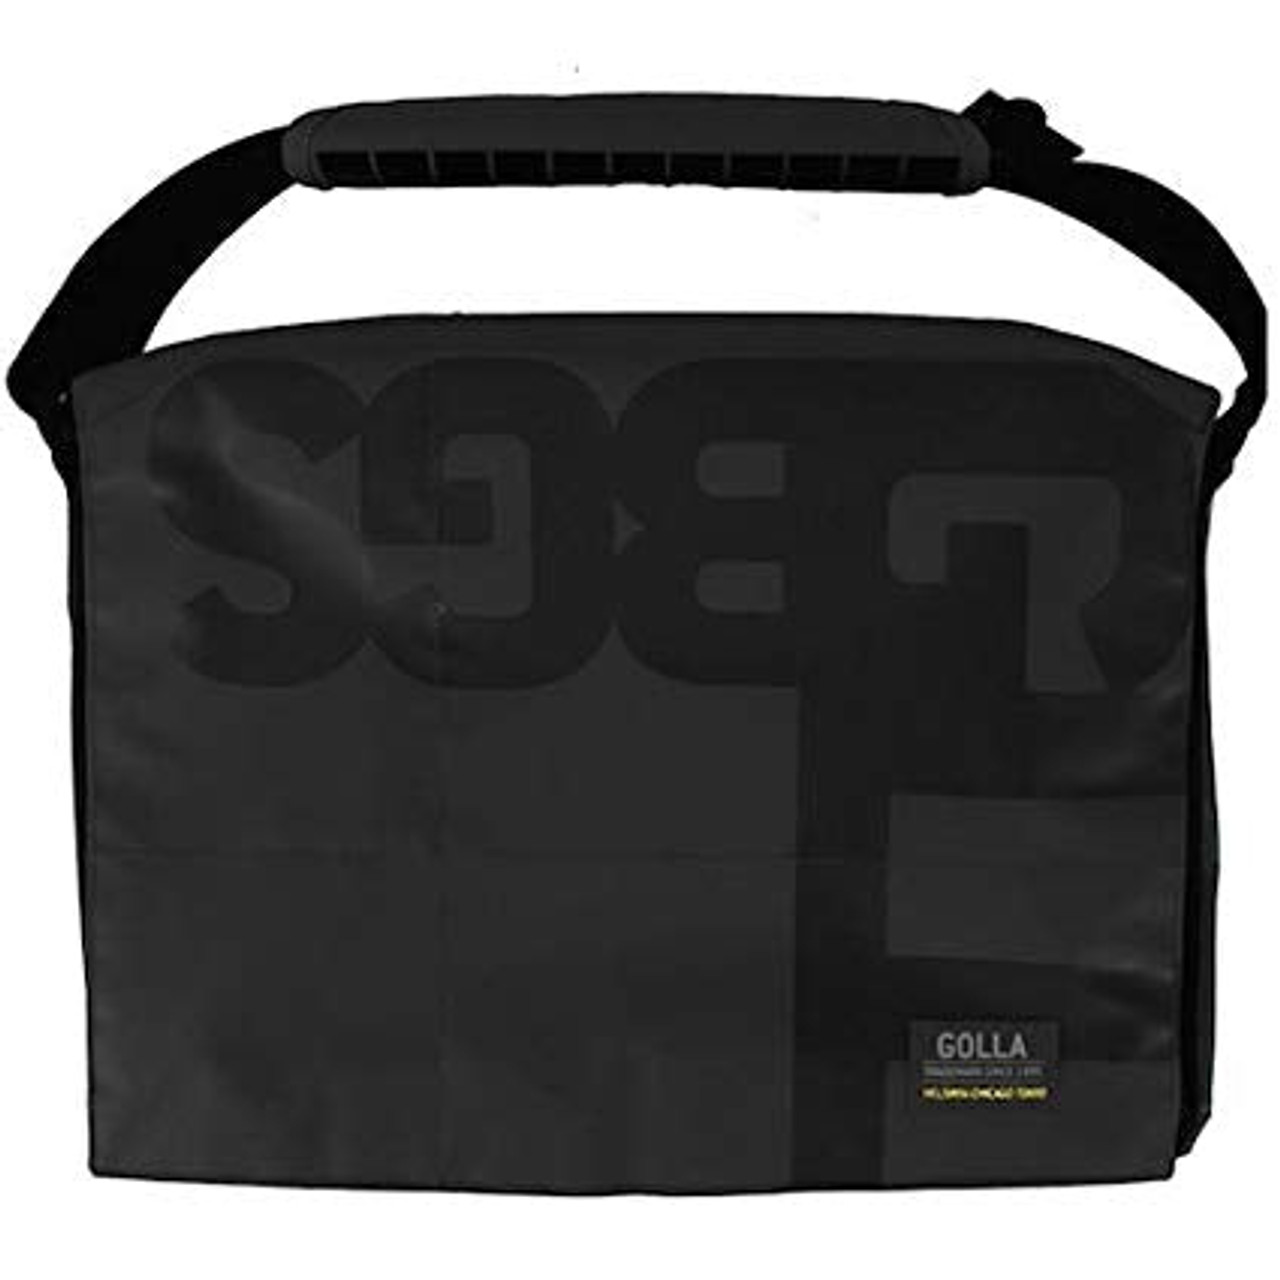 "Golla G1452 Toledo 11"" Tablet , Chromebook, Laptop  Bag in Black"